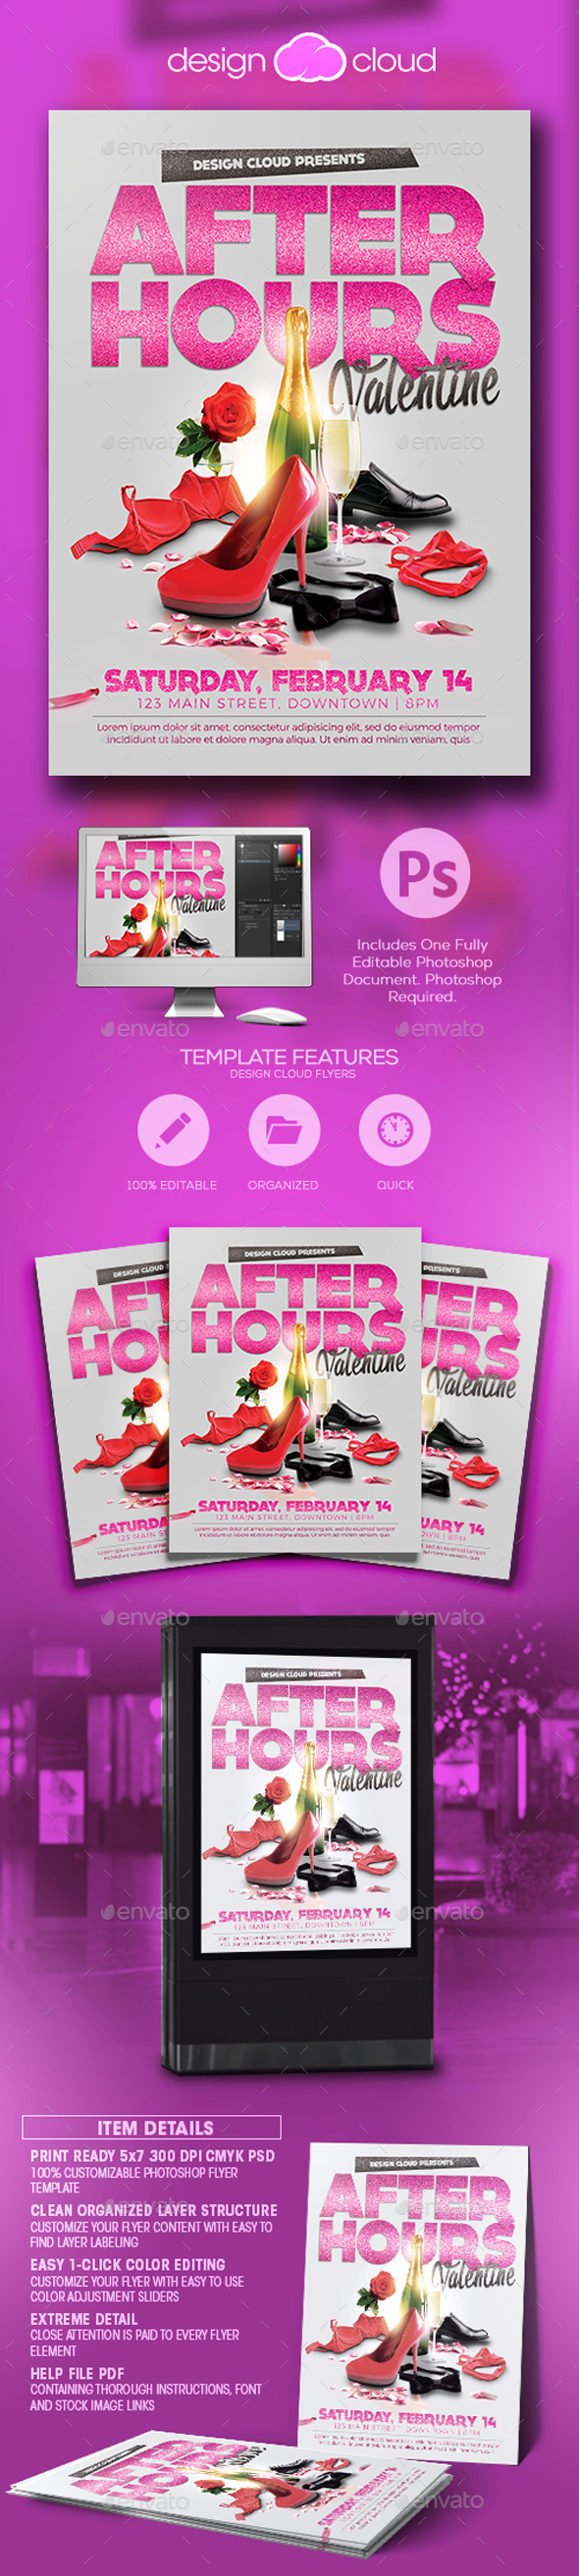 After Hours Valentine Flyer Template - Holidays Events